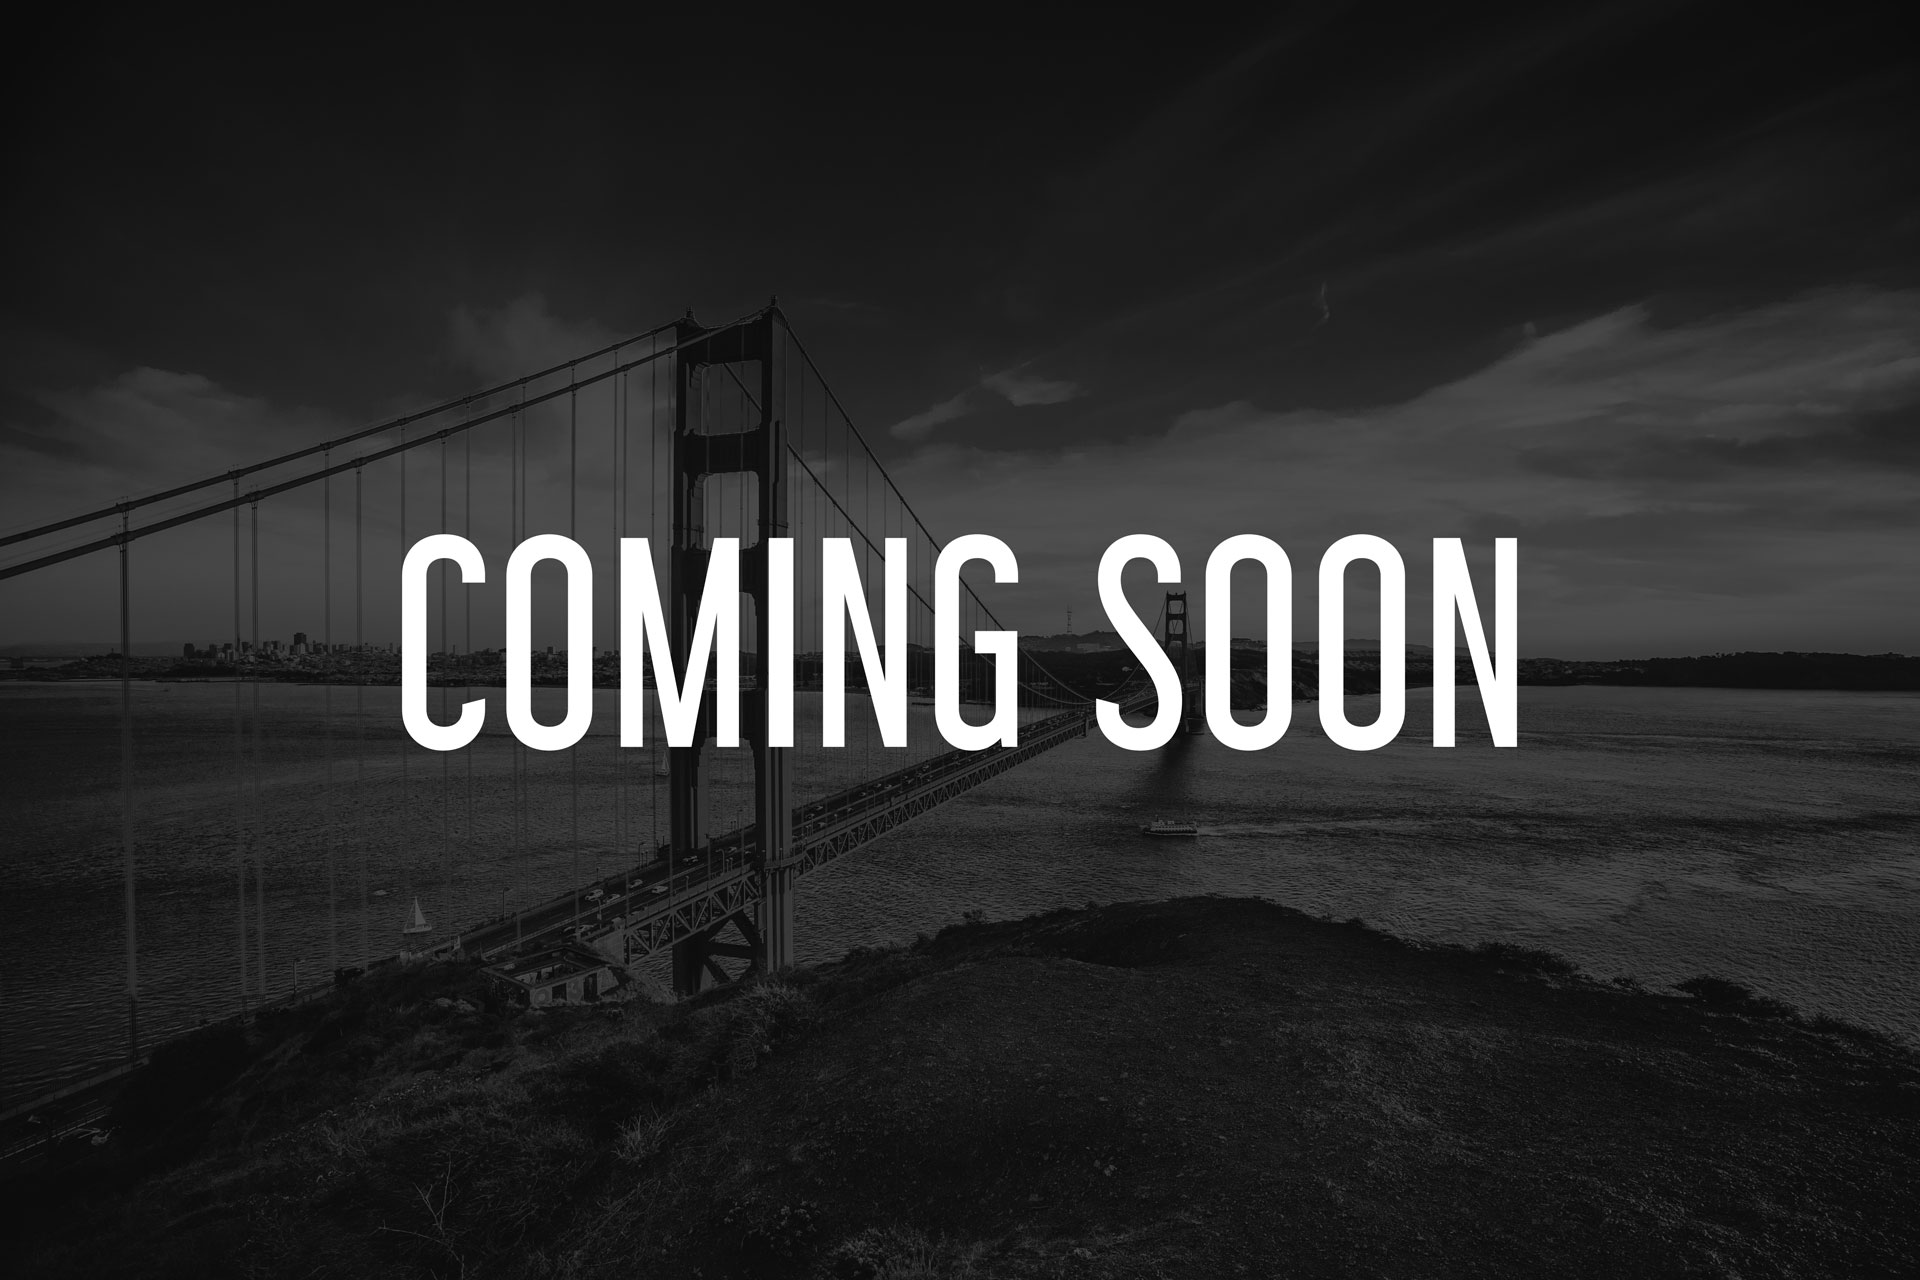 San-Francisco-Coming-Soon.jpg